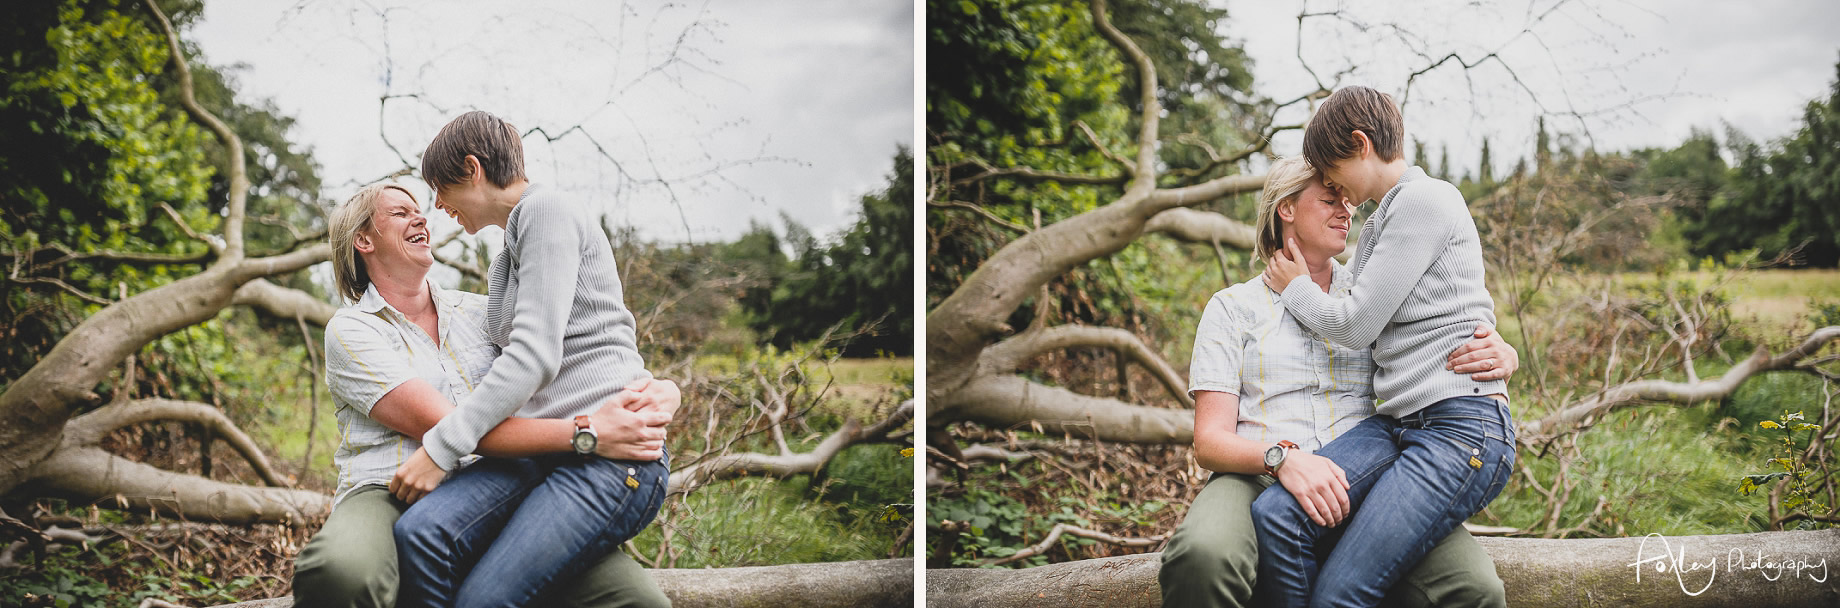 Becky-and-Amy-Pre-Wedding-Portraits-at-Denzell-Gardens-011